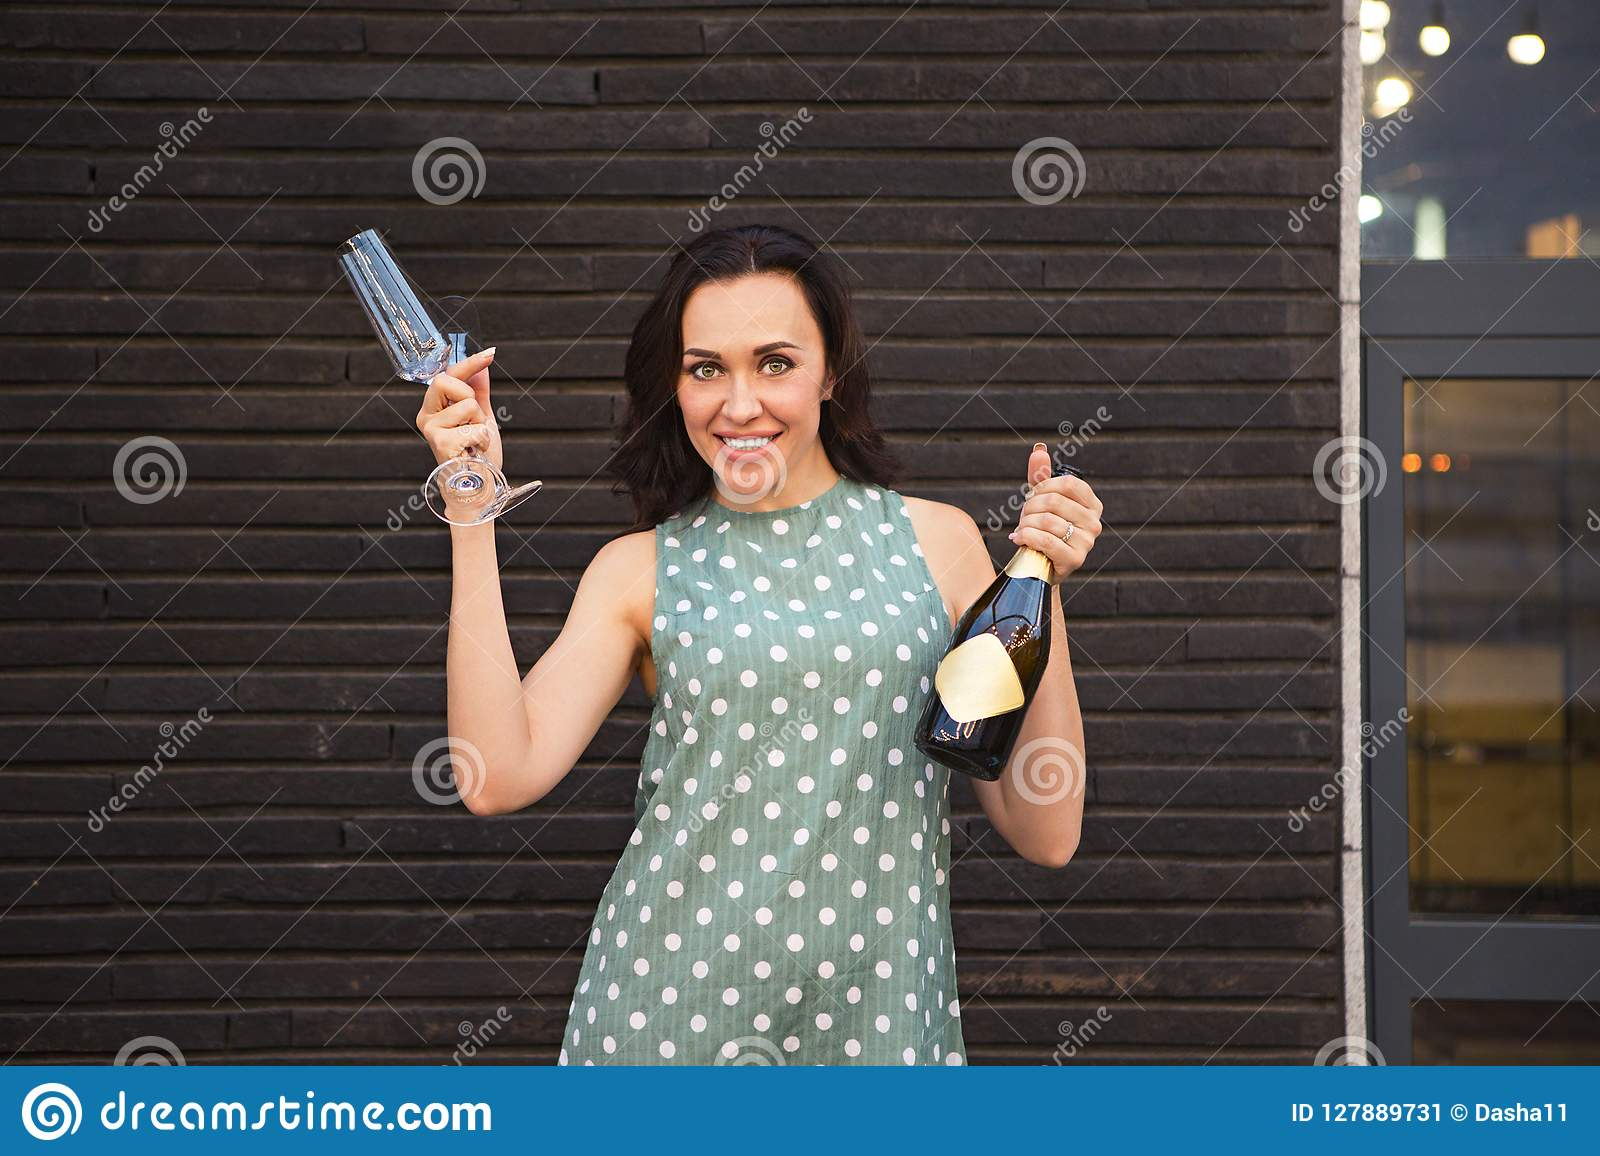 Beautiful young woman in a green polka dots dress holding two glasses and champagne bottle